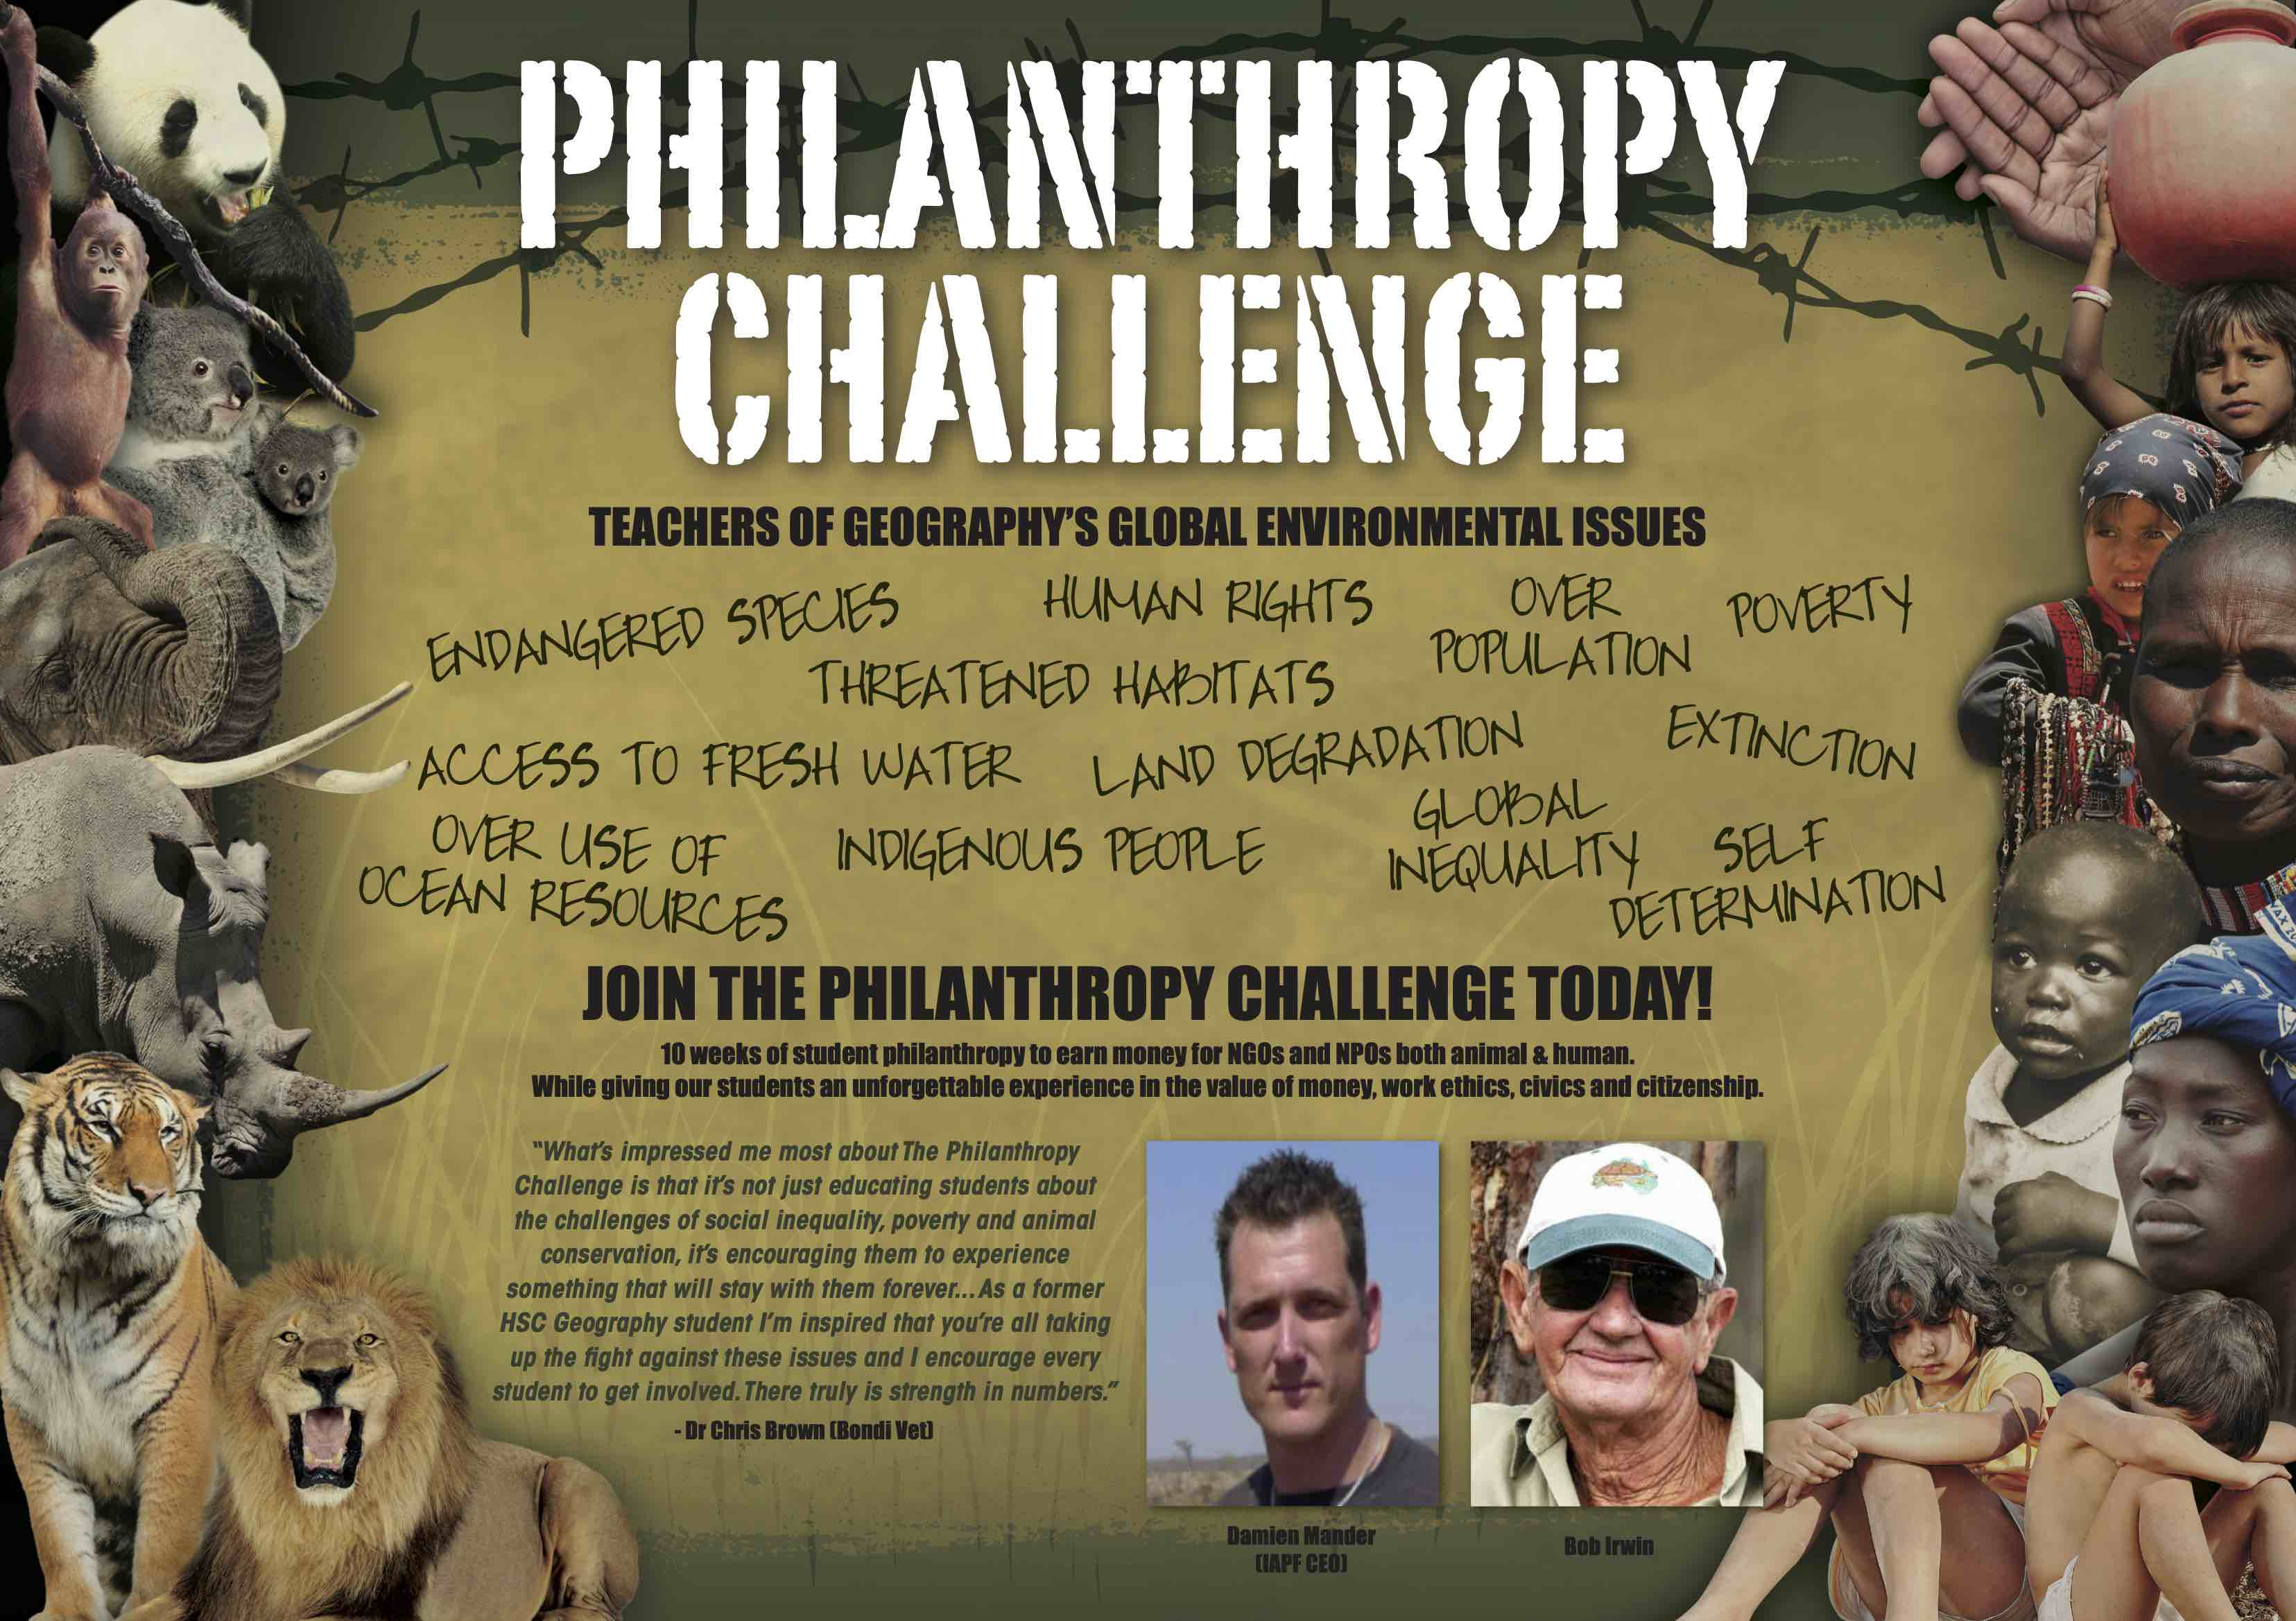 Philanthropy Challenge Poster with Bob Irwin